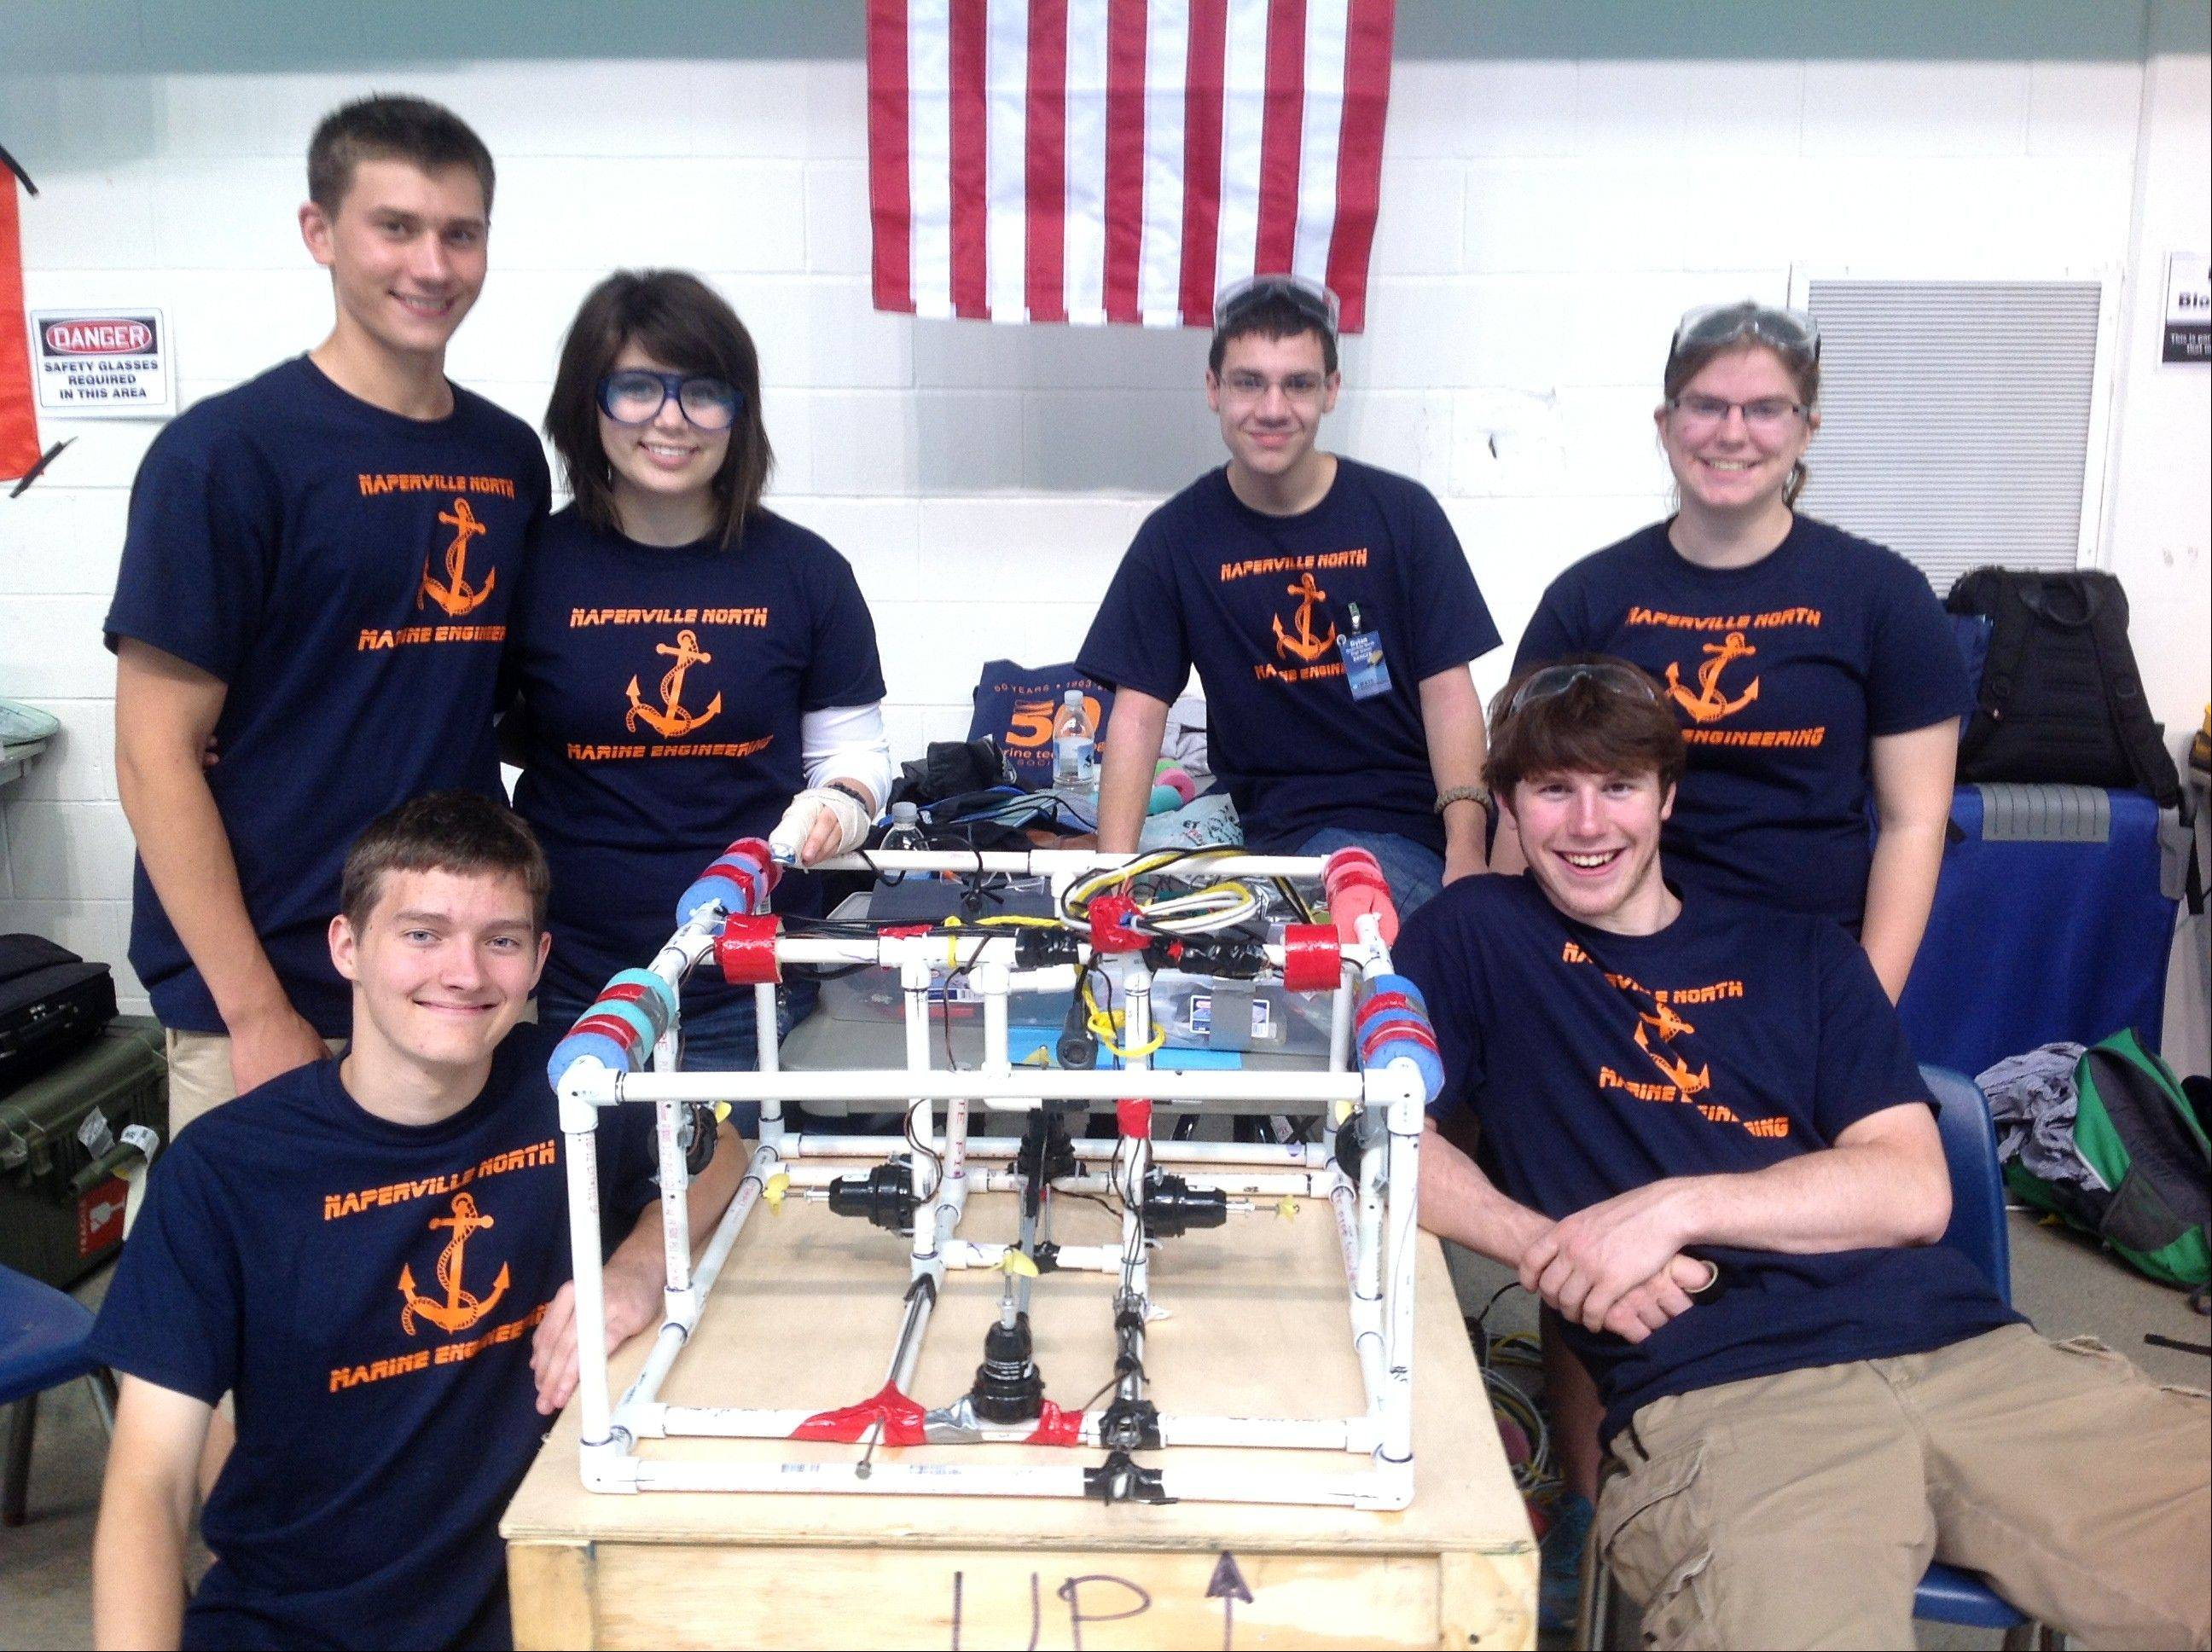 Naperville North High School's marine engineering team, a subsection of the physics club, is Stuart Houston, Isaac Heine, Carissa Cesarotti, Dylan Coupe, Julie Ozols and Konrad Hausman. The team built a remotely operated vehicle to complete scientific tasks underwater in an international competition in June.